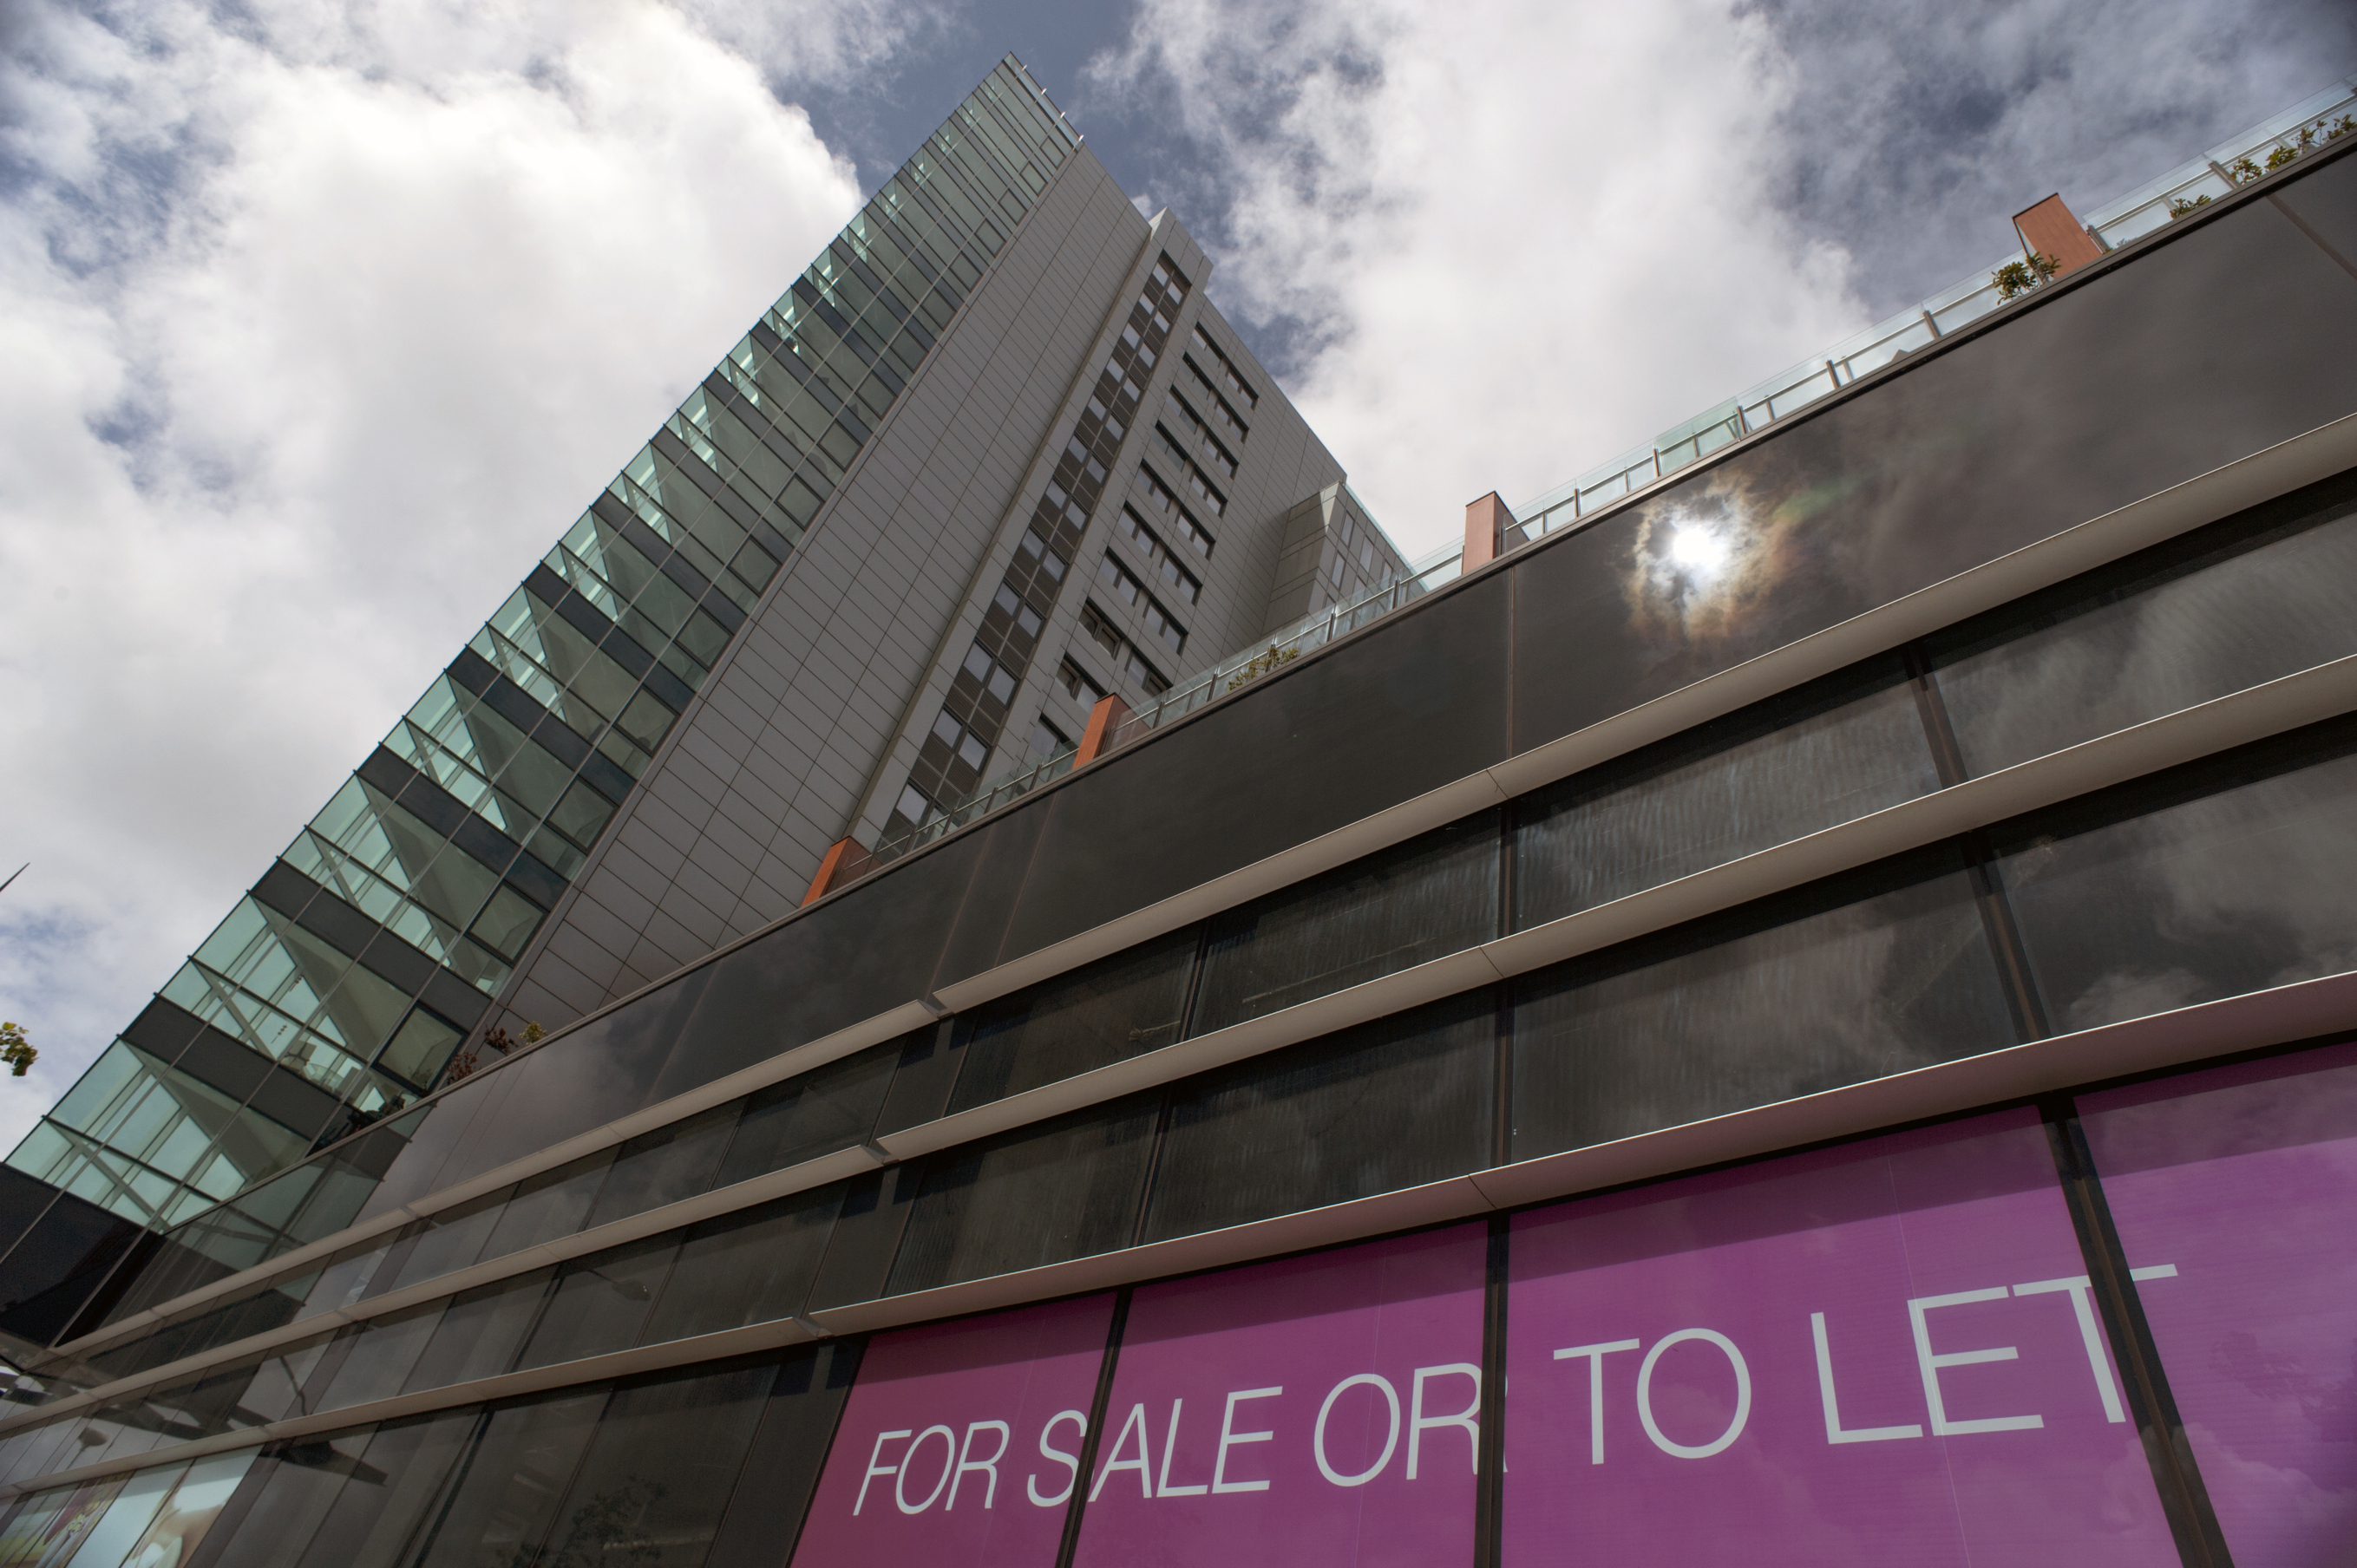 skyscraper and retail shopping units for sale or rent in cork city